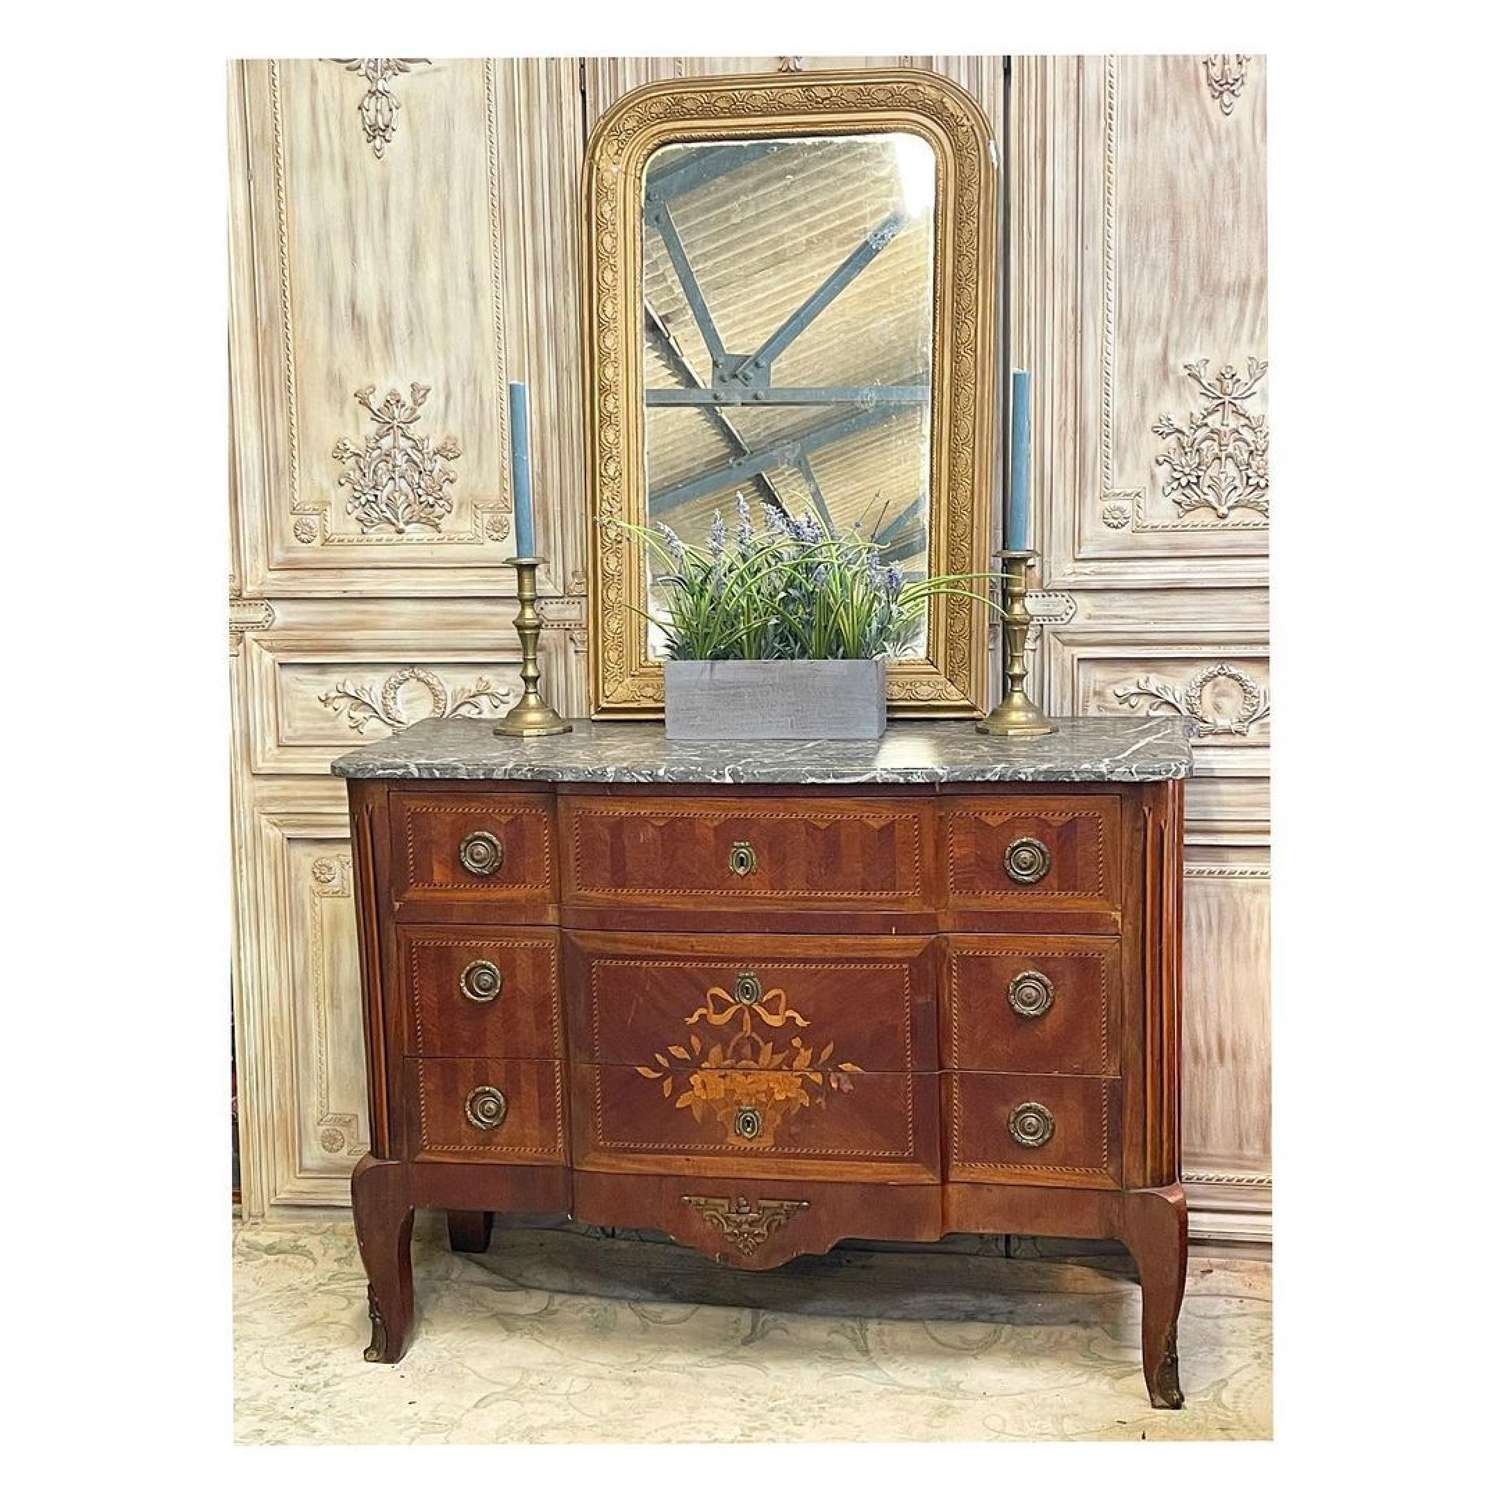 French Empire chest of drawers